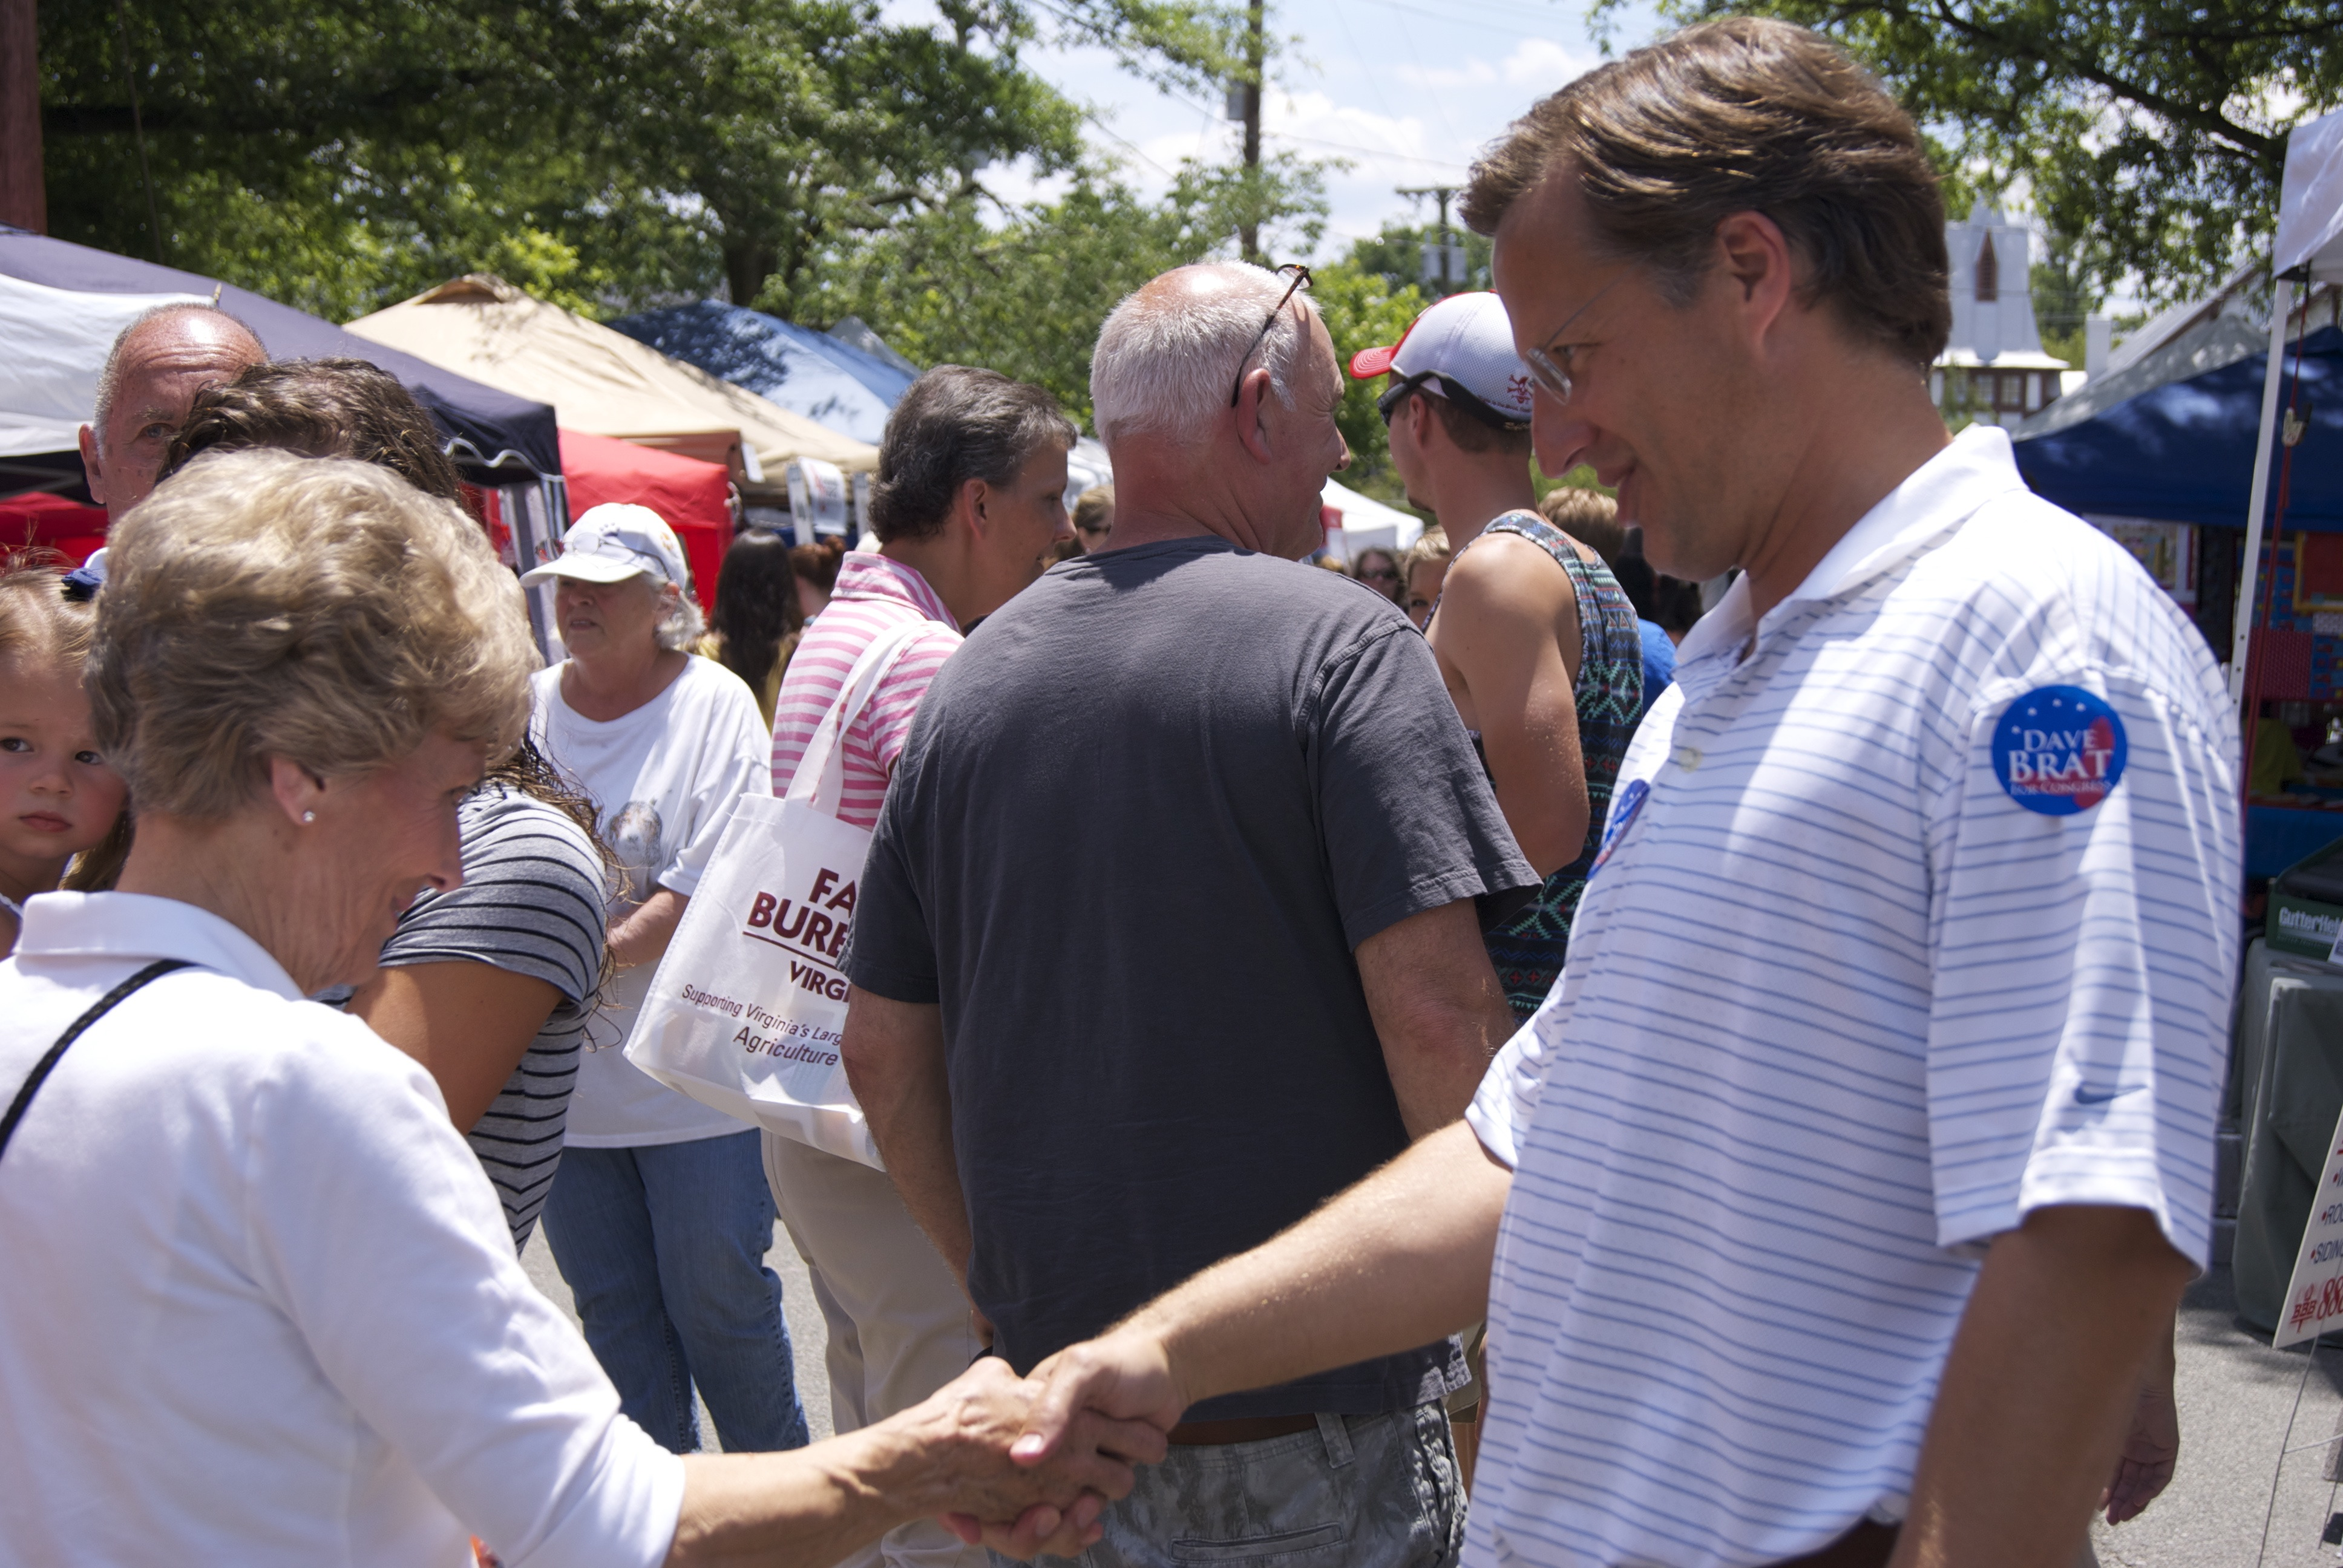 Dave Brat made sure to shake hands with everyone that walked by him at the Ashland Strawberry Faire. Photo by Rachel Wellford.